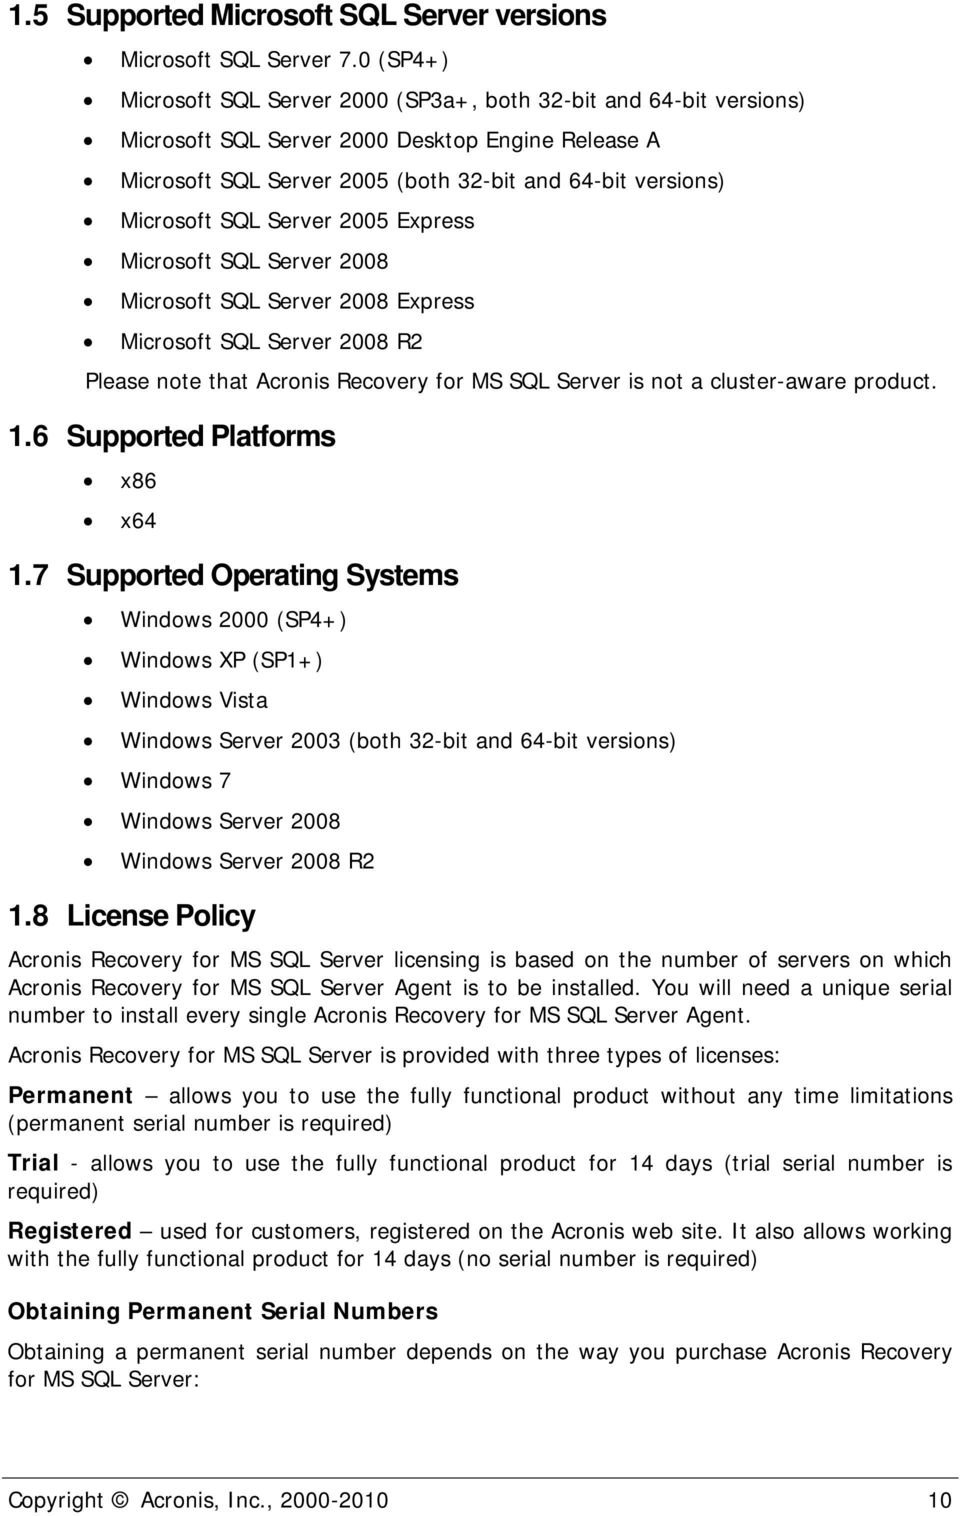 SQL Server 2005 Express Microsoft SQL Server 2008 Microsoft SQL Server 2008 Express Microsoft SQL Server 2008 R2 Please note that Acronis Recovery for MS SQL Server is not a cluster-aware product. 1.